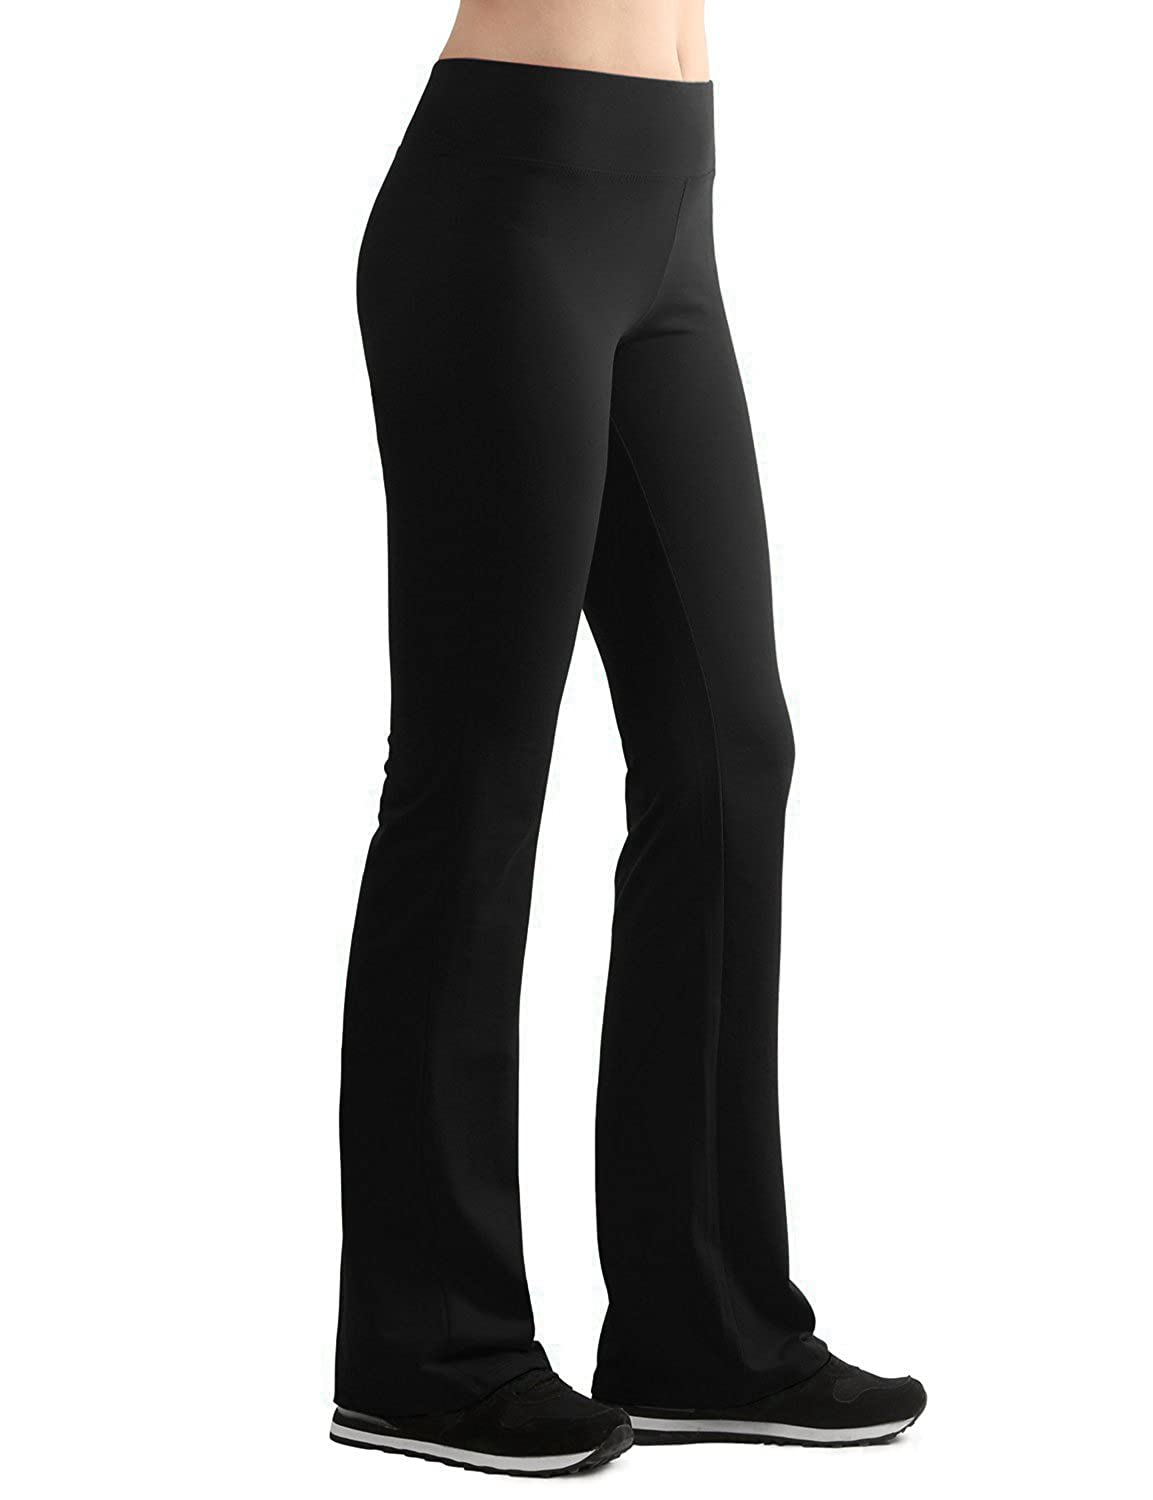 0893ed1368d28 ***BEWARE OF IMITATION*** Please make sure when you checkout it\'s  fulfilled by LOCK AND LOVE WB961: Bootleg yoga pants features a elastic  band and flare ...